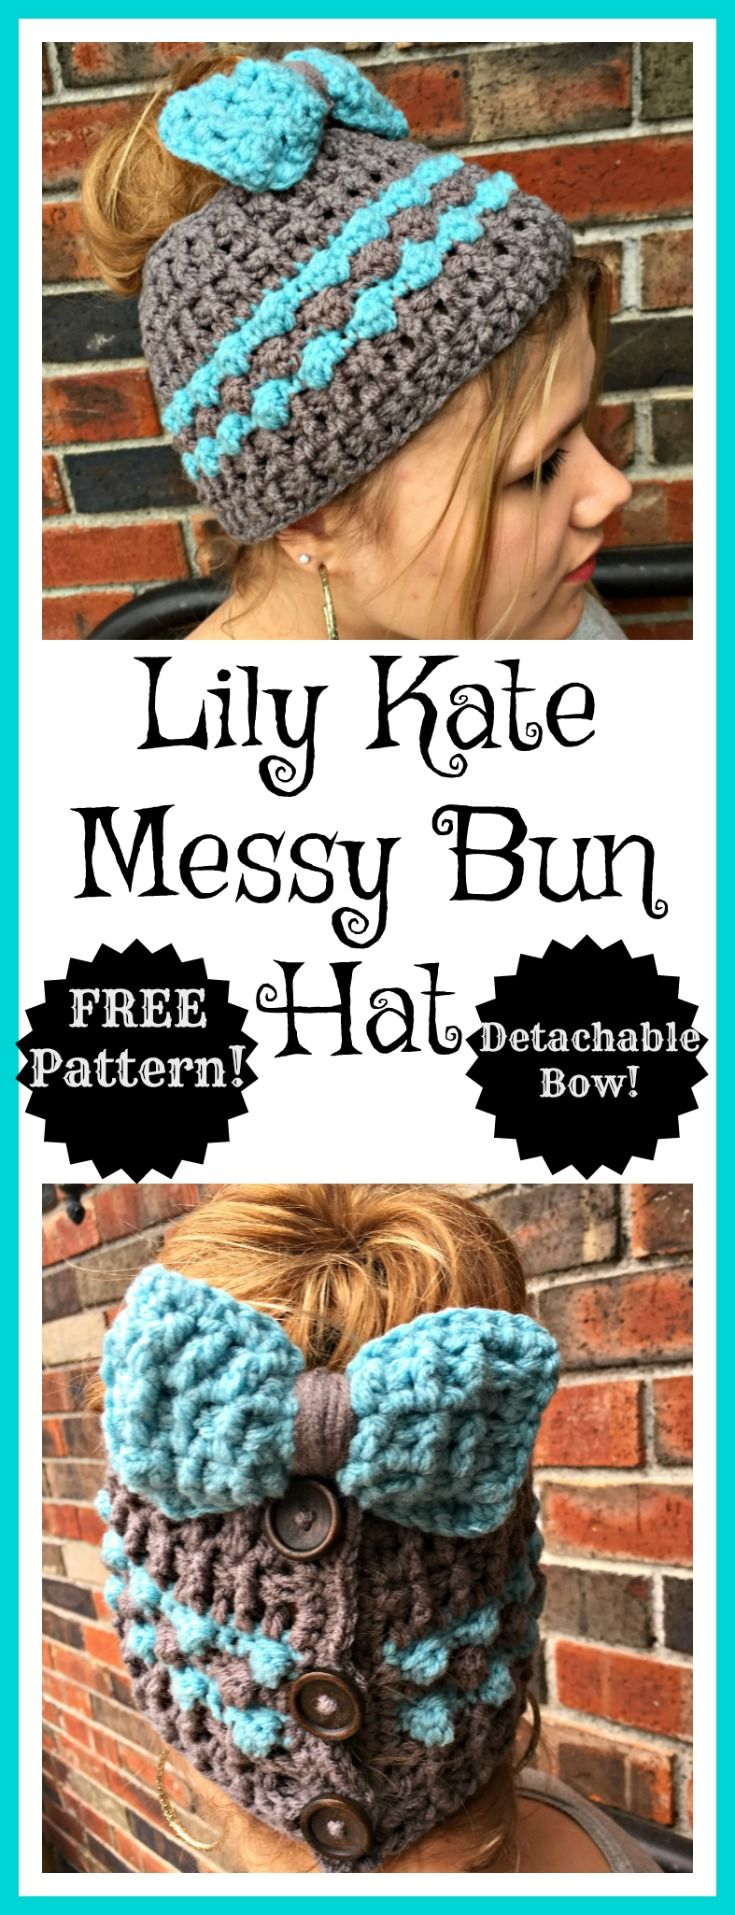 Free crochet pattern for a messy bun hat with detachable bow. This is so cute!